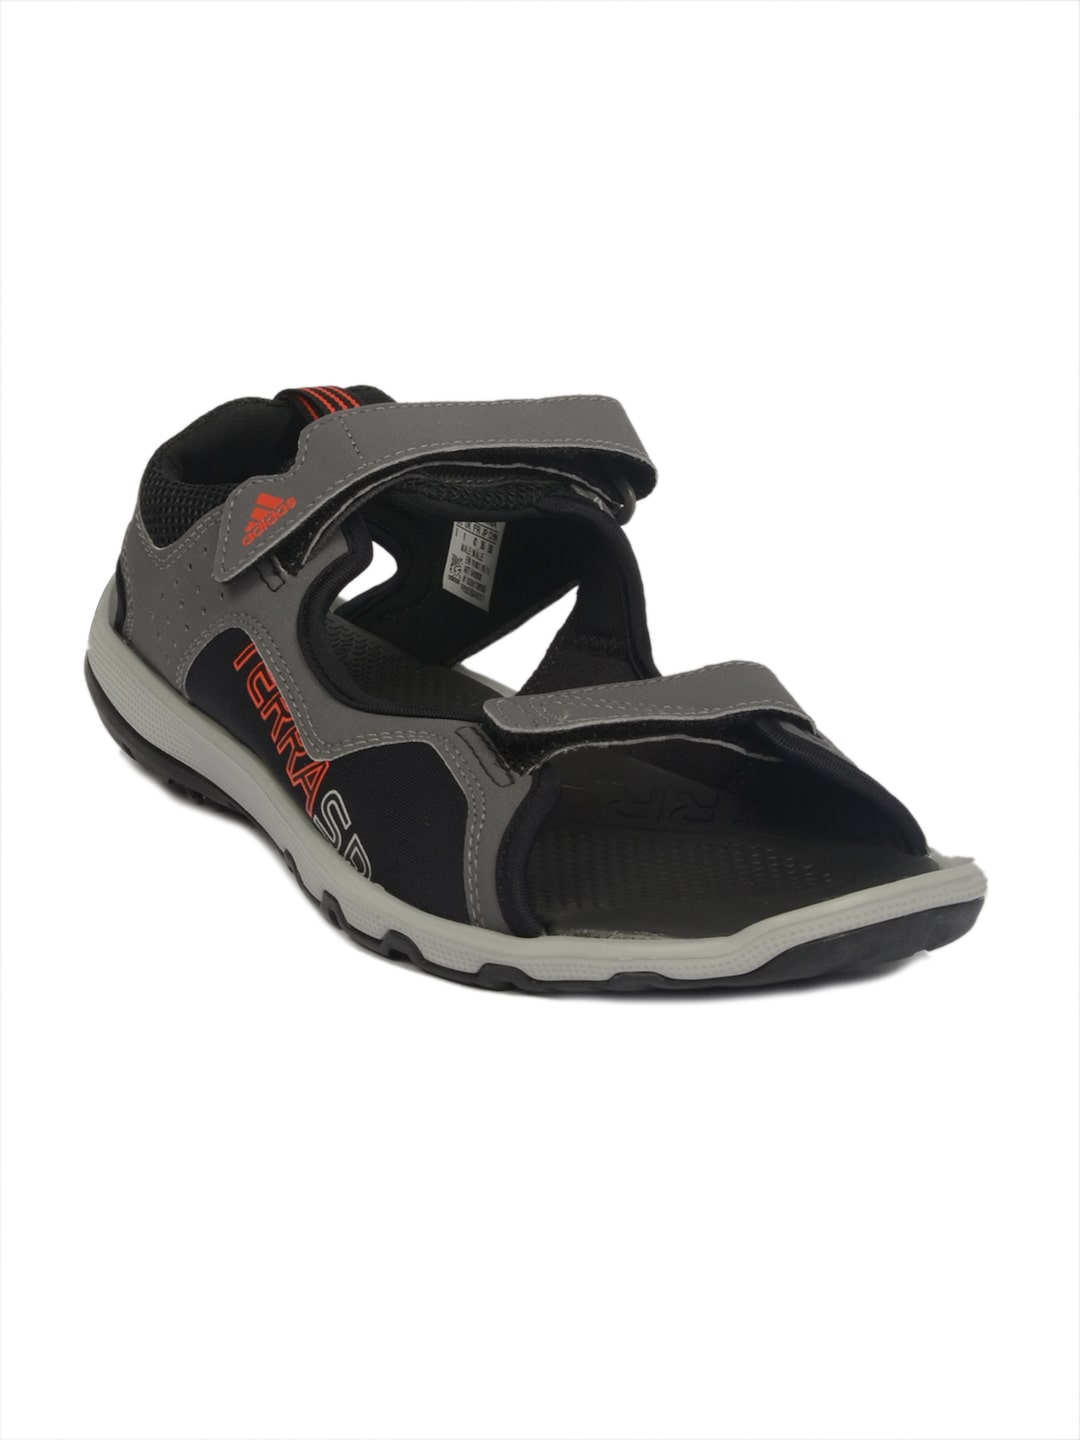 ea4b640d390a Adidas u42639 Men Terra Sports Syn Grey Sandals - Best Price in ...